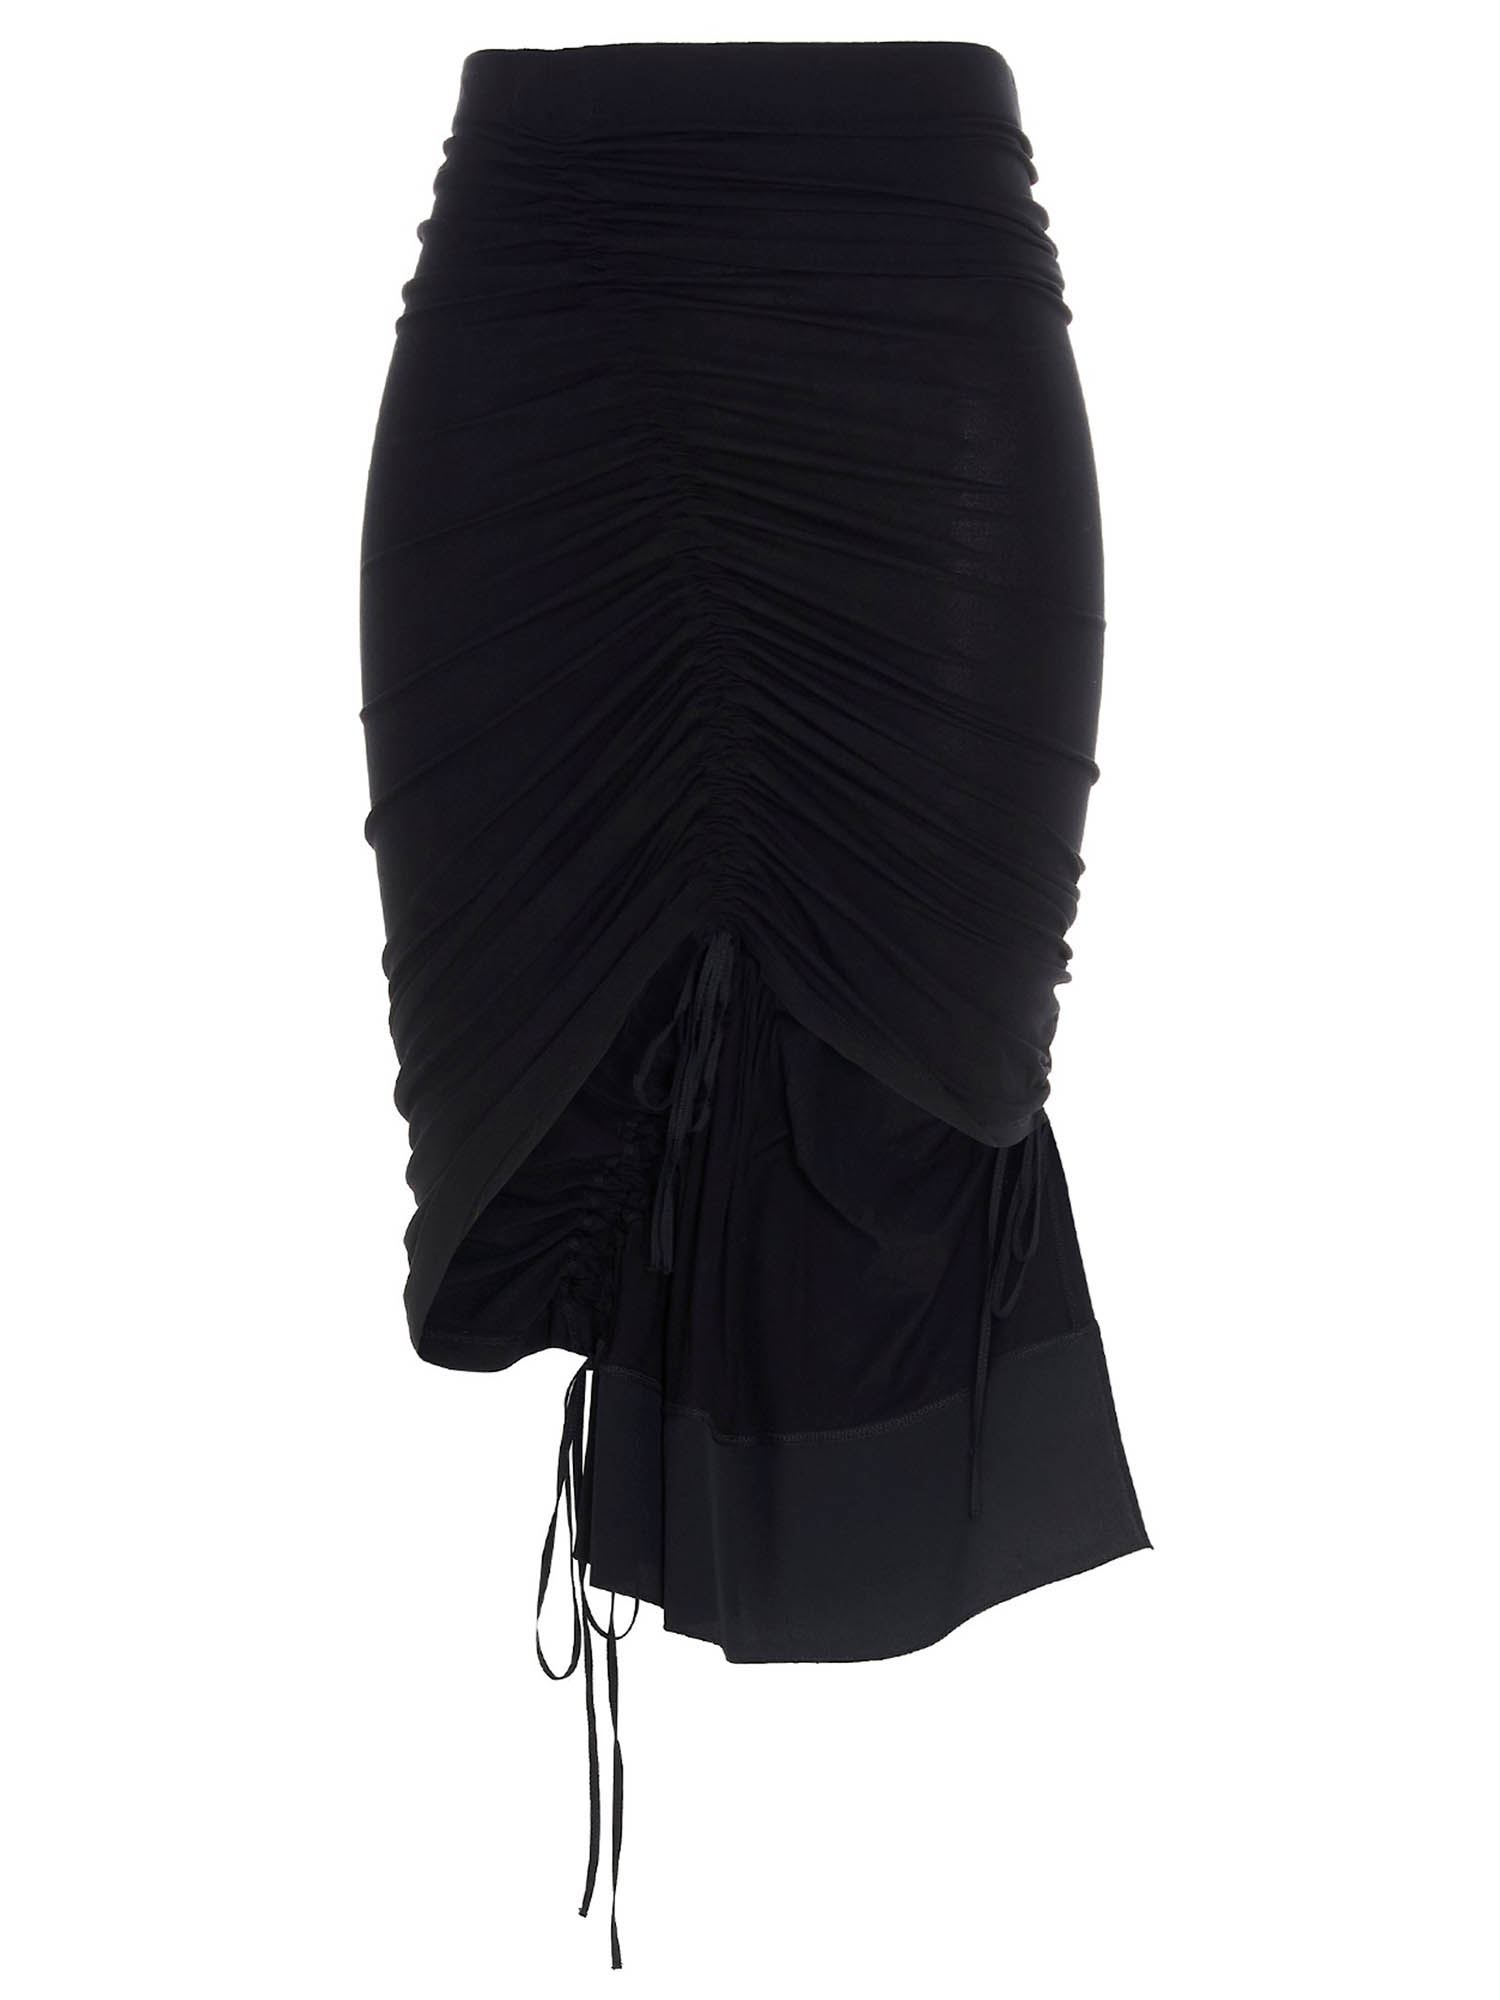 N°21 ASYMMETRICAL DRAWSTRING SKIRT IN BLACK